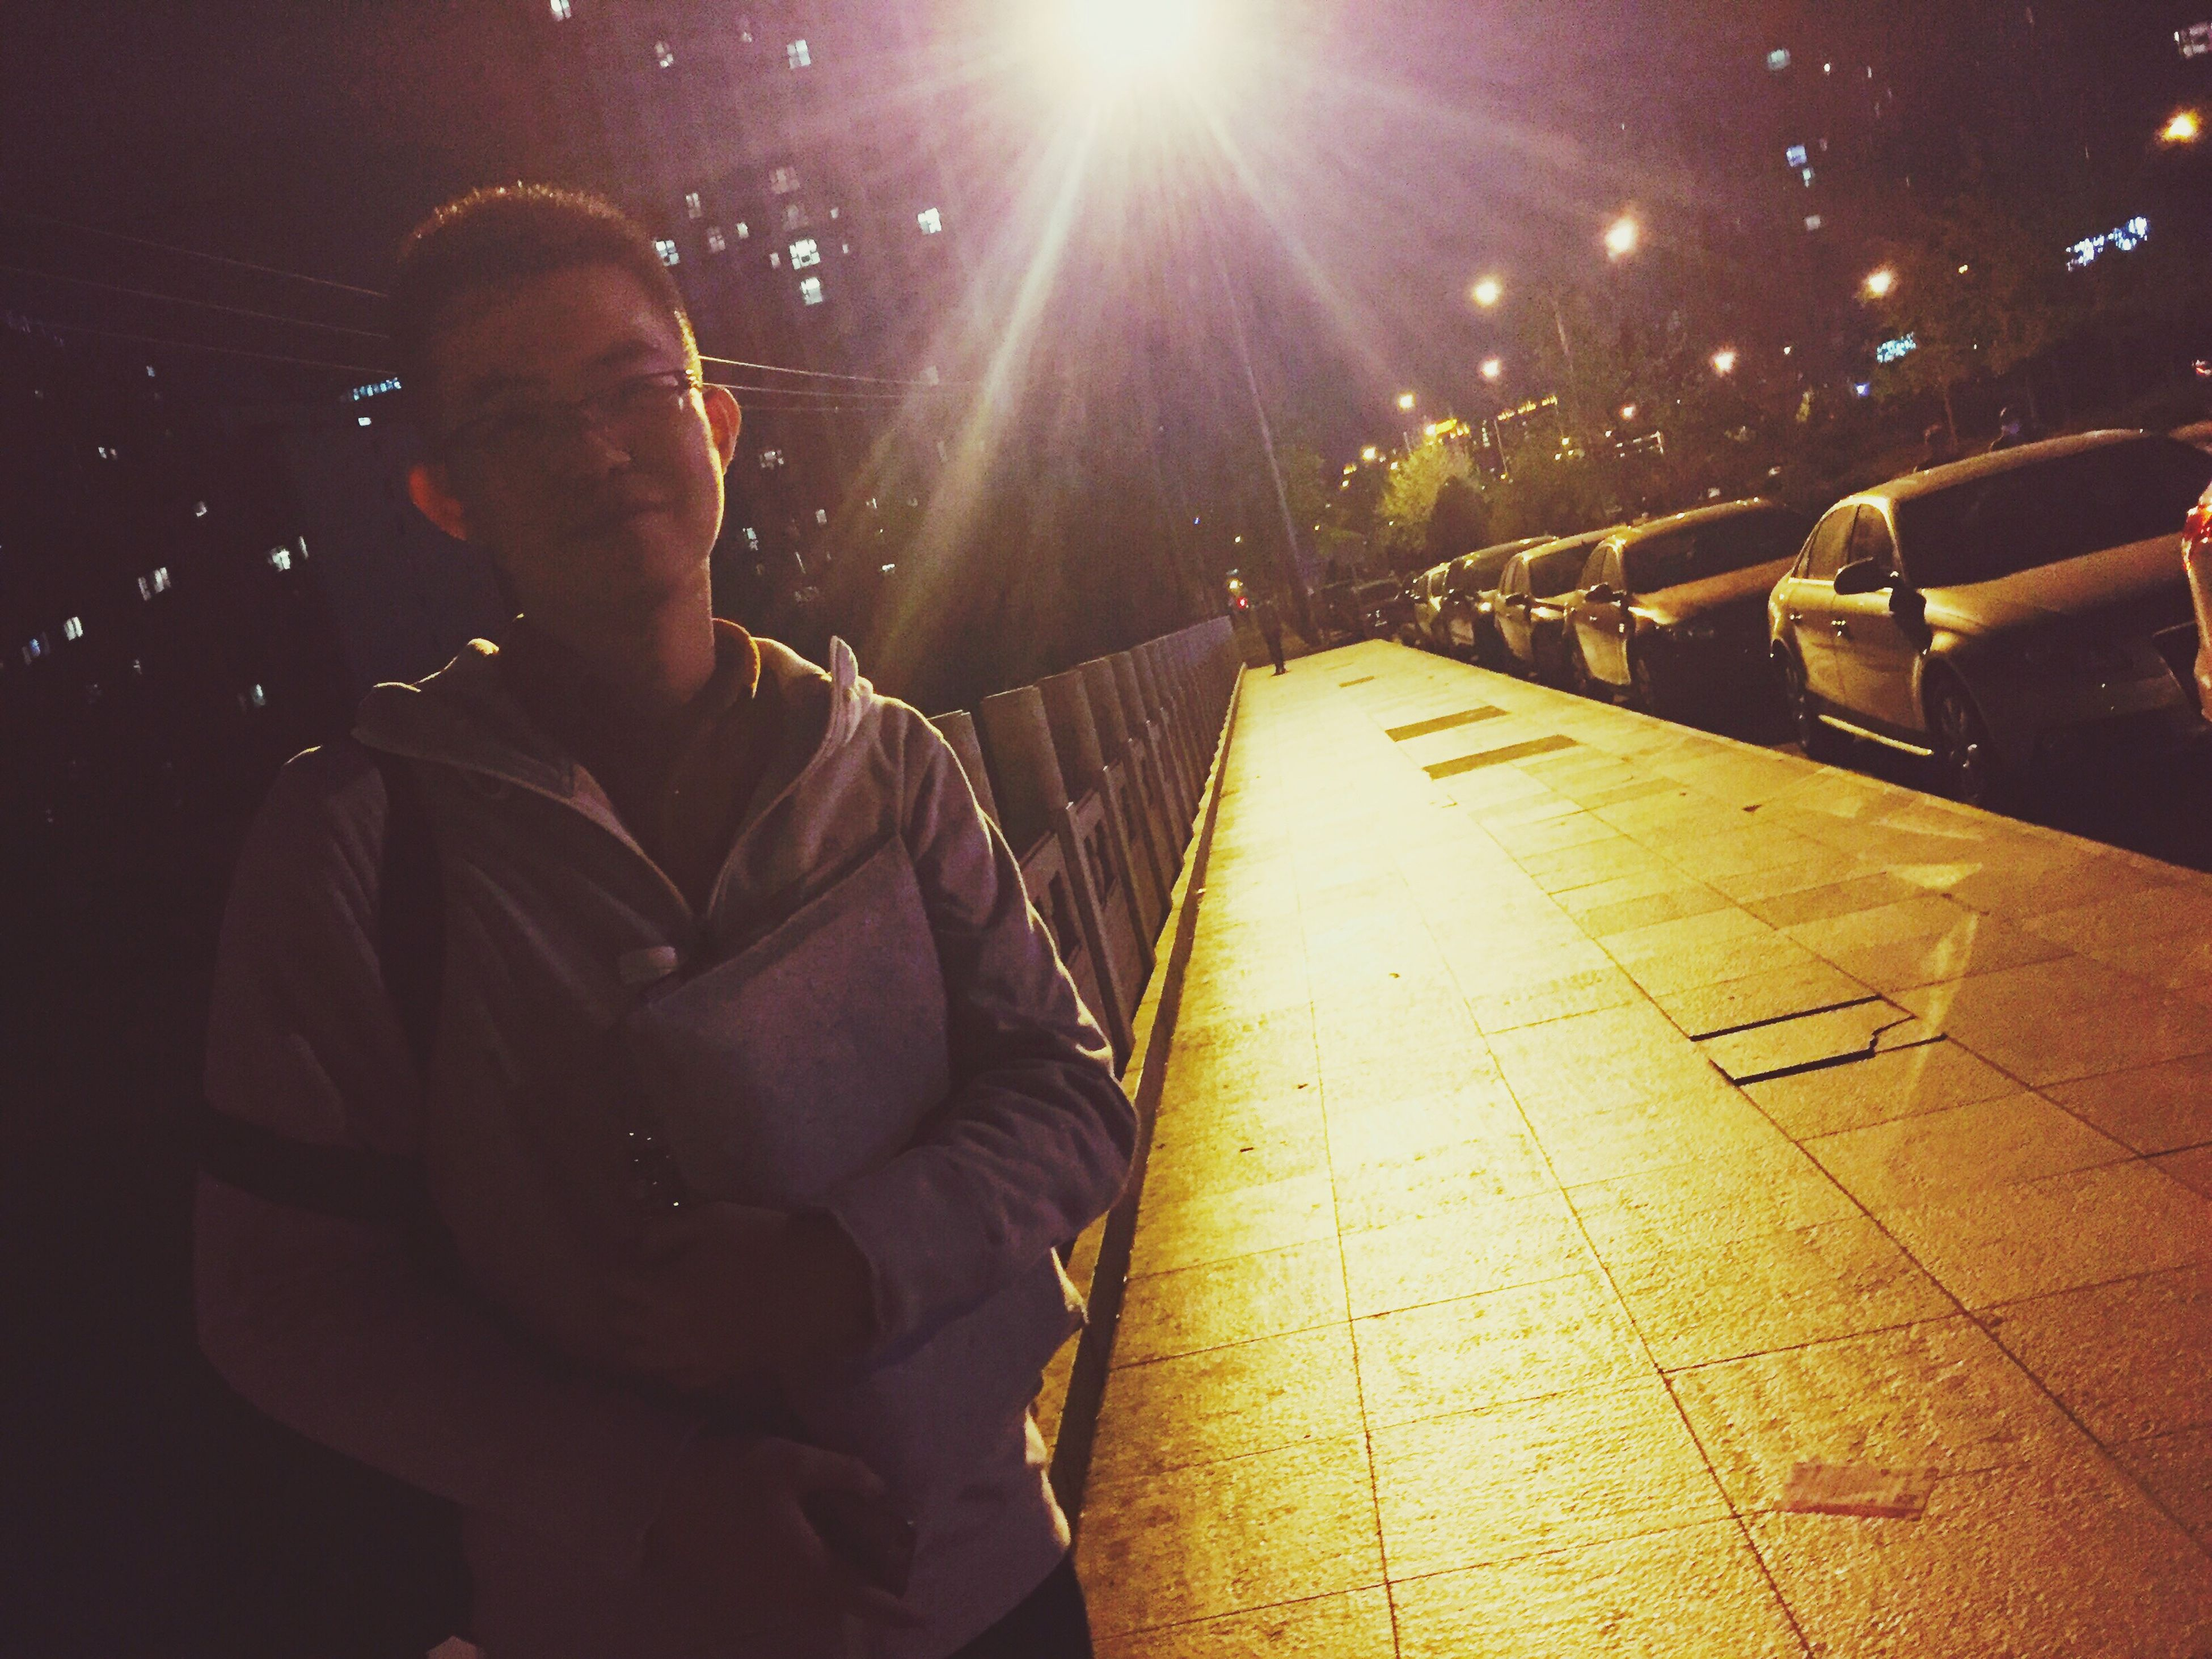 night, lifestyles, leisure activity, illuminated, men, casual clothing, togetherness, full length, sunlight, sitting, bonding, street, rear view, standing, person, outdoors